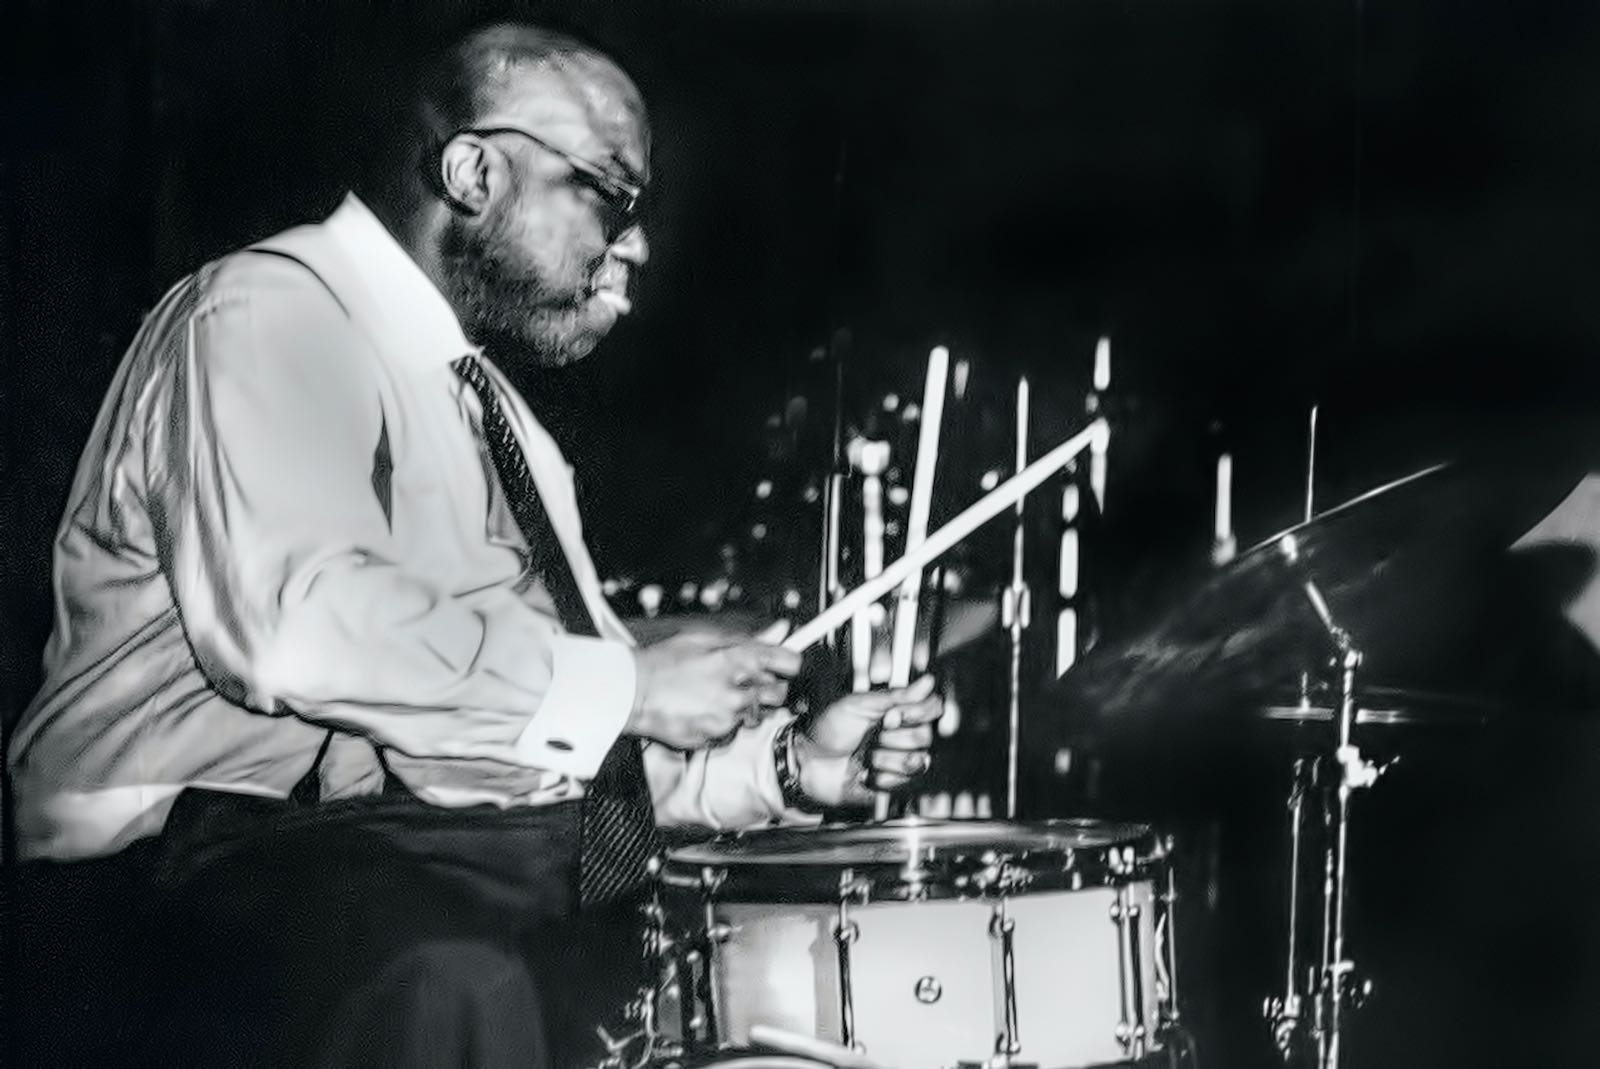 Stanley Crouch playing drums, 2004